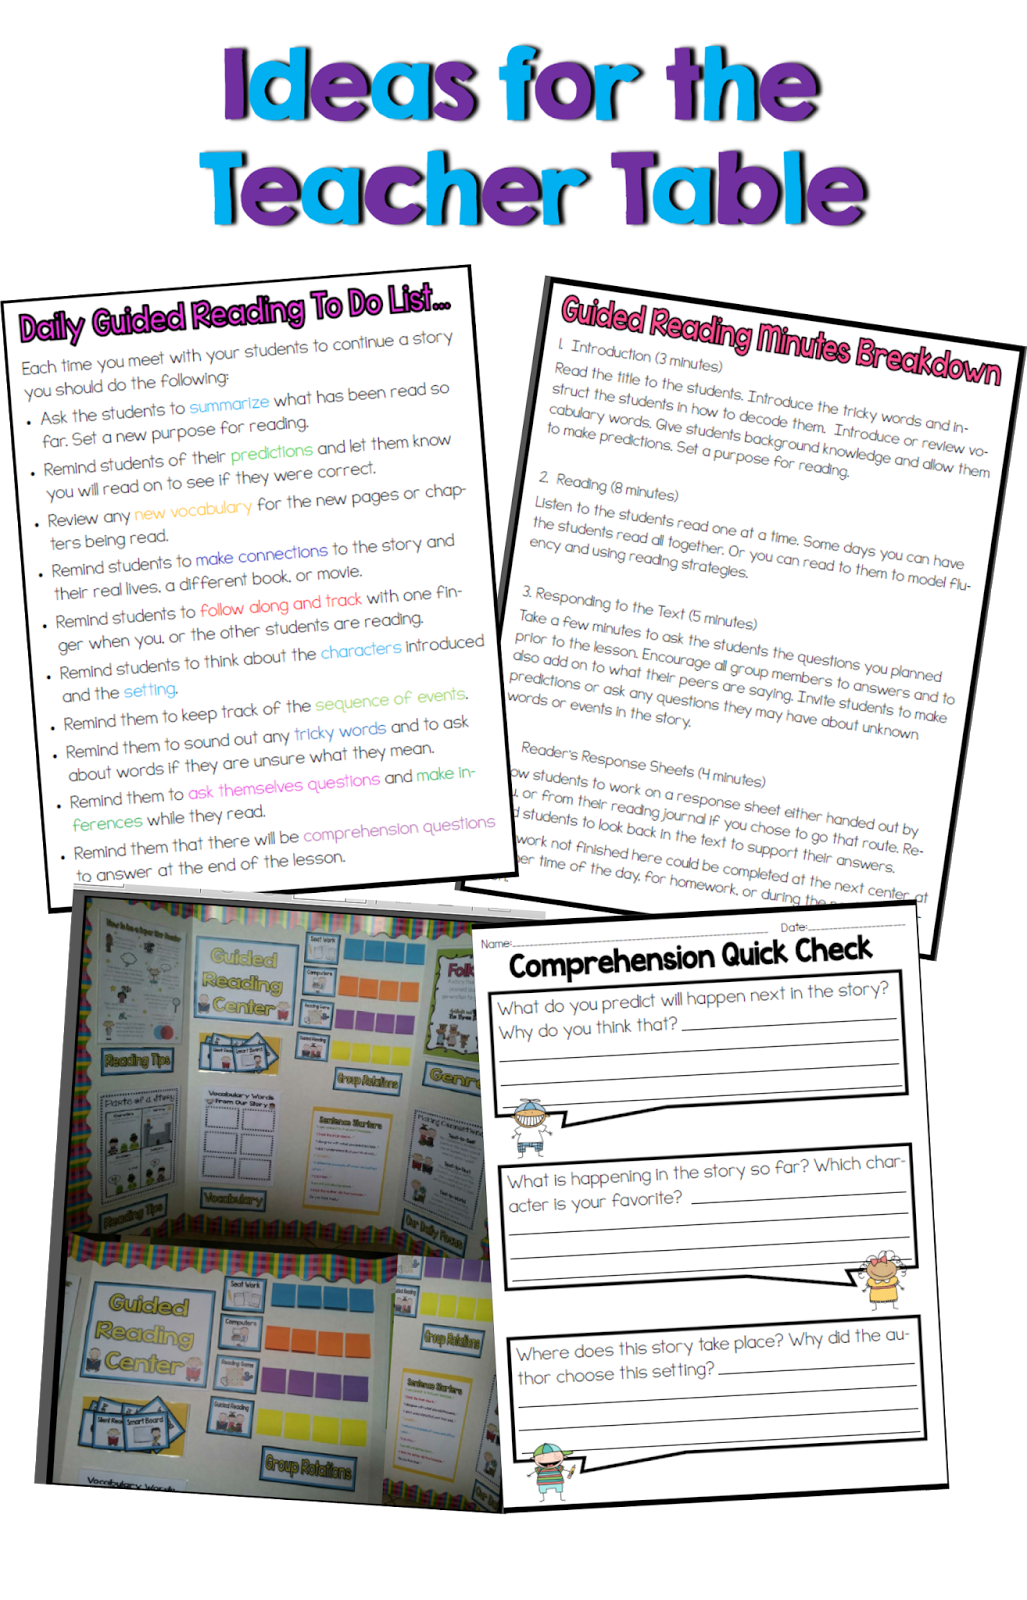 Primary Classroom Design Guide ~ Primary chalkboard reading center ideas for your classroom